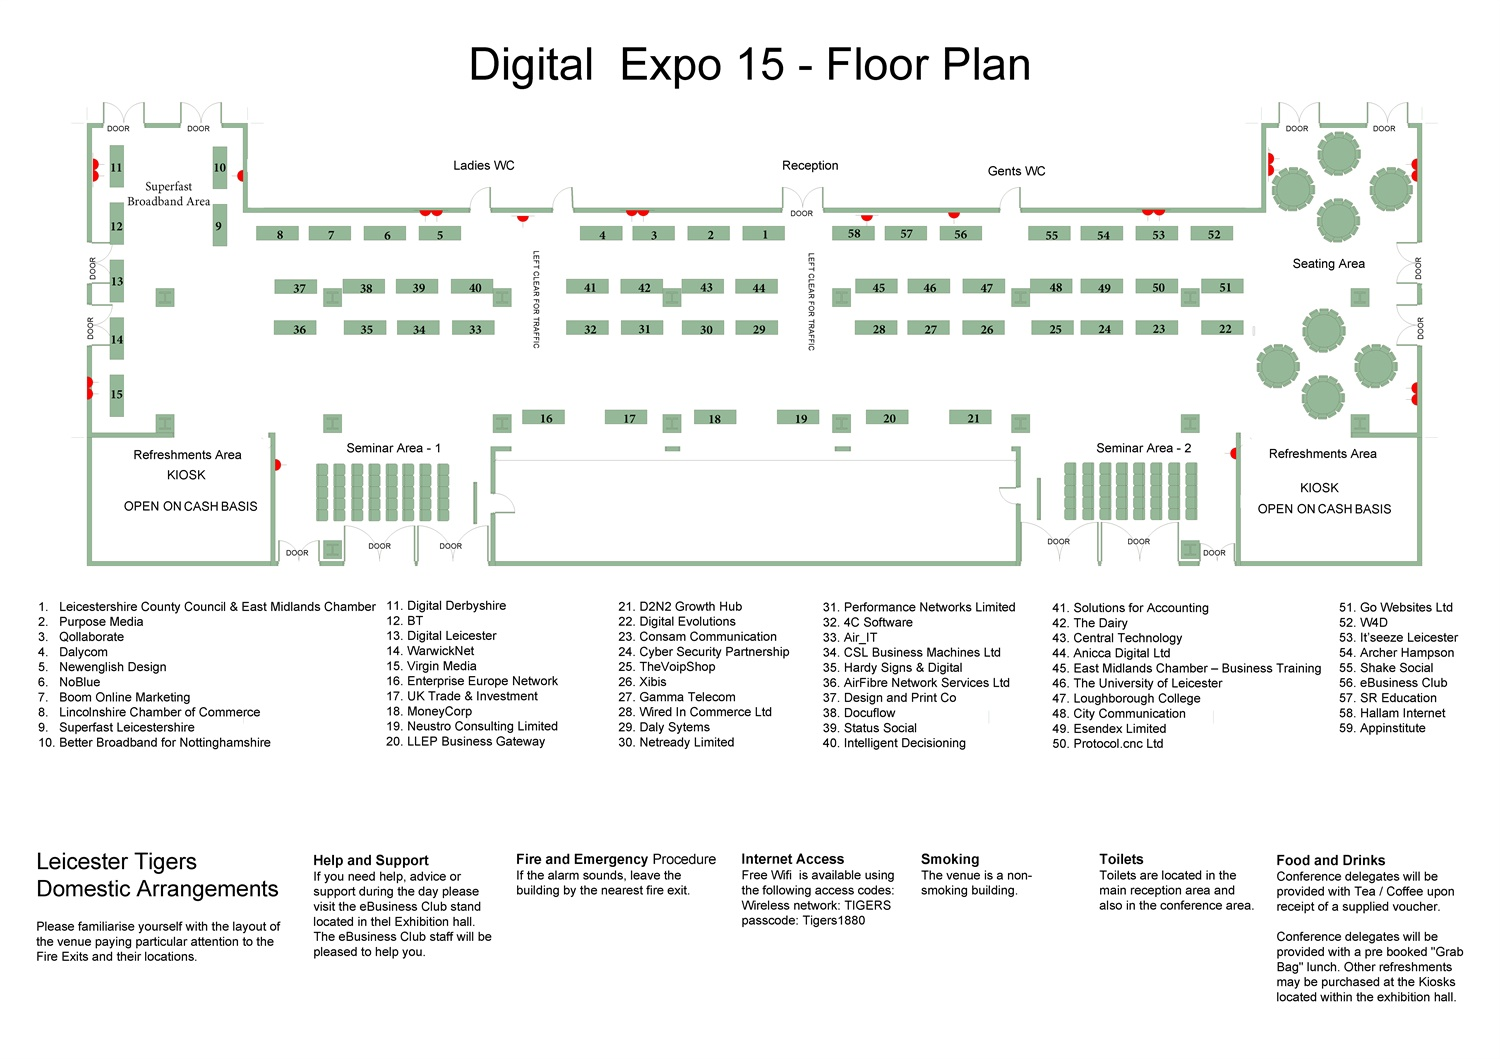 Digital Marketing Conf and Expo 2015 - Expo Floor Plan Final J